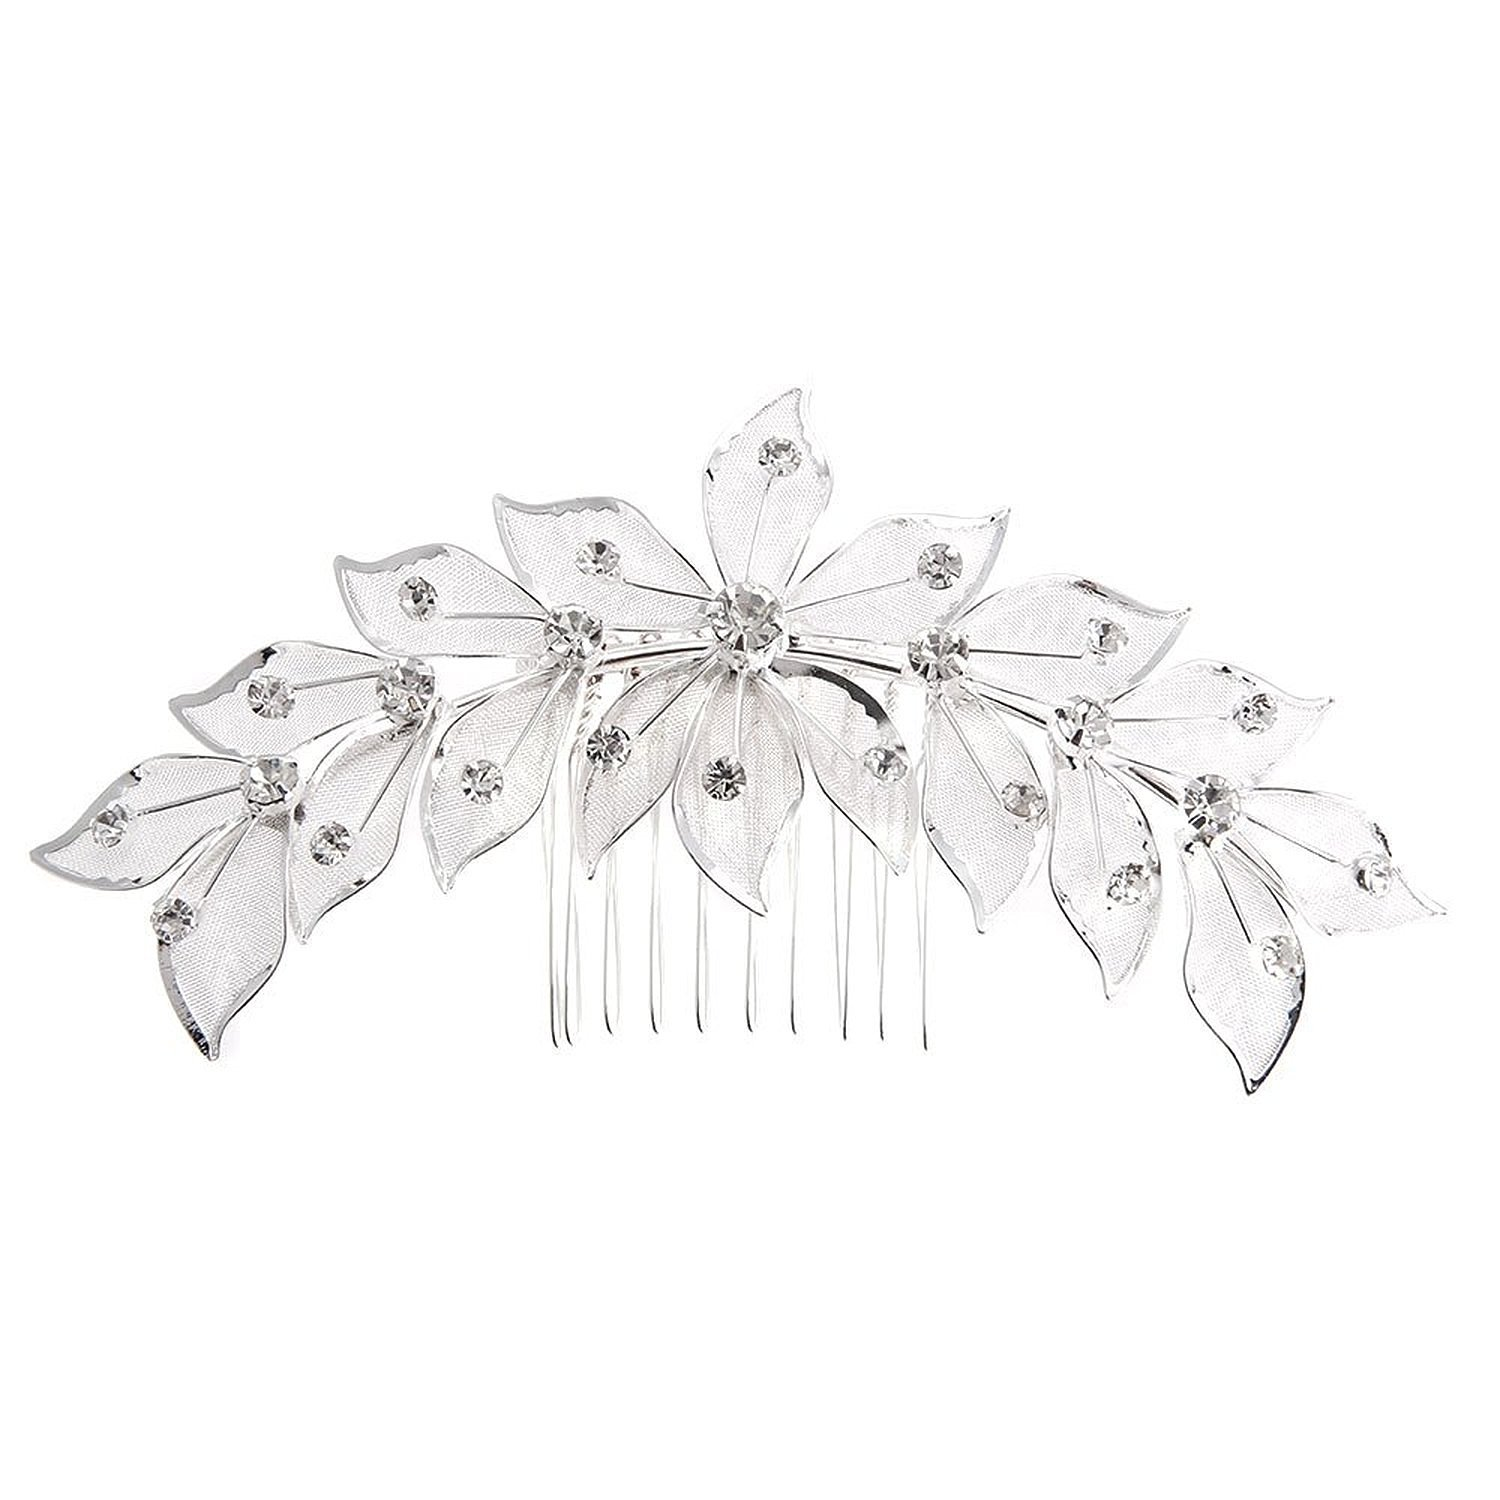 Hair comb - TOOGOO(R)Hair comb Silver Plate Zirconia Flower for Young Bride